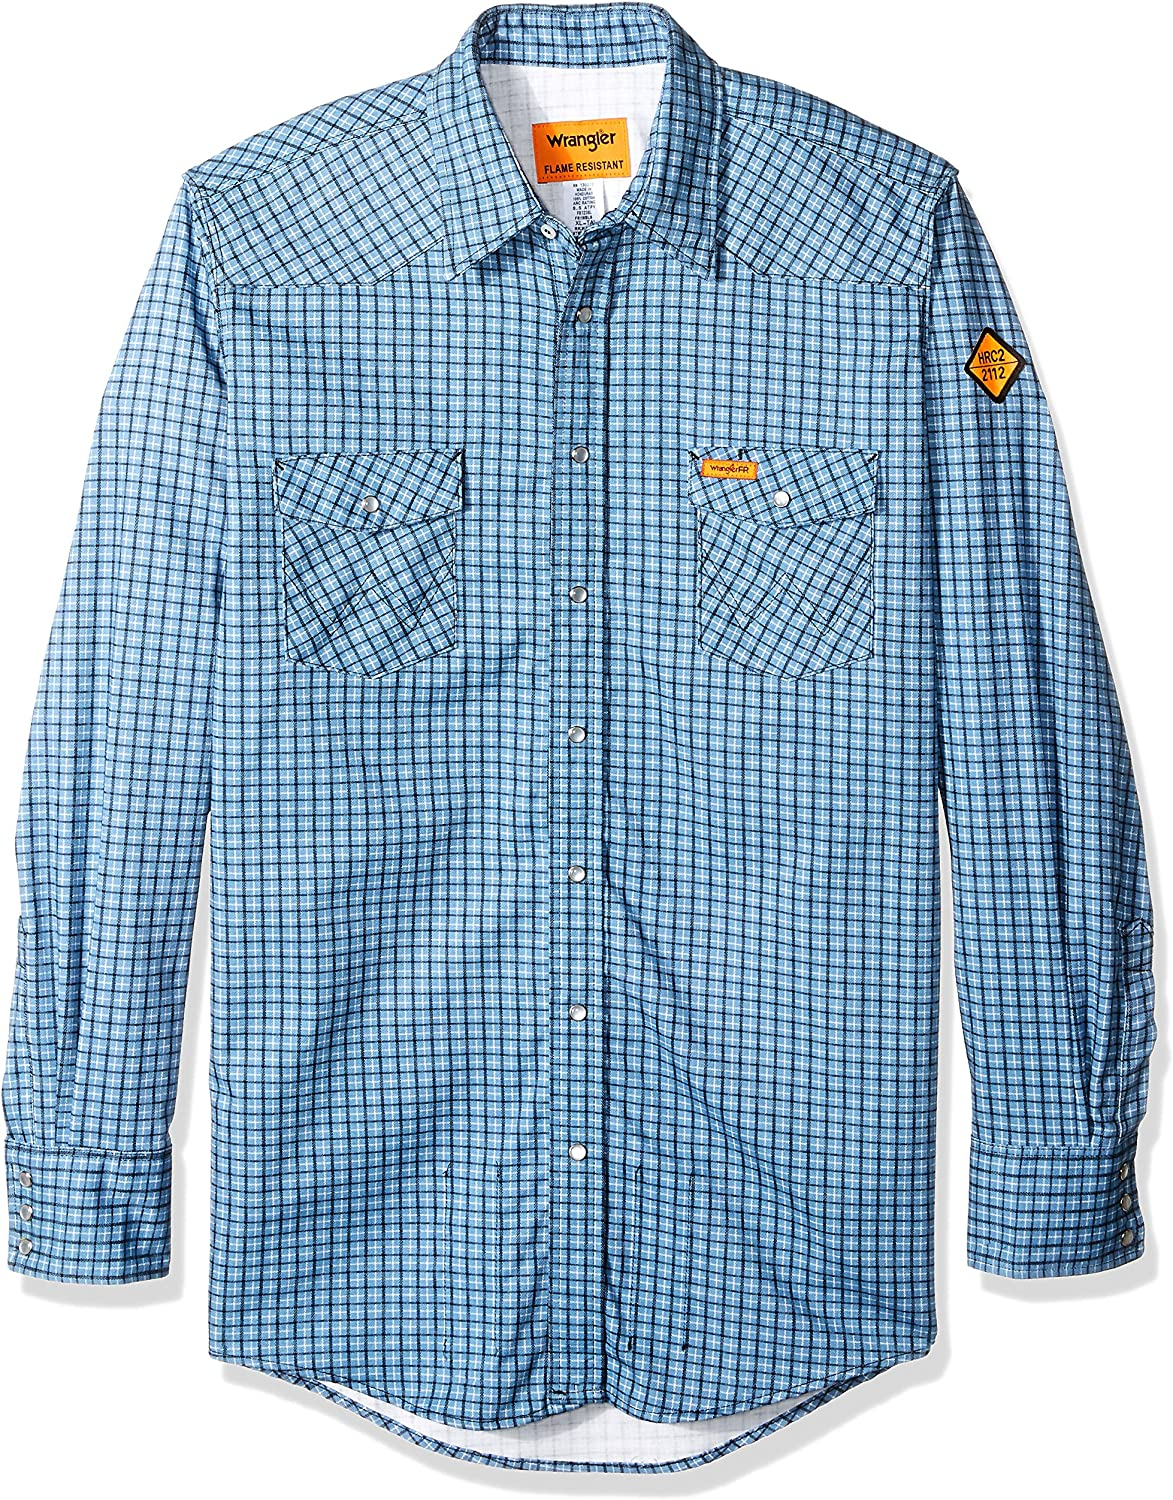 Wrangler Men's Big and Tall Flame Resistant Western Two Pocket Snap Shirt